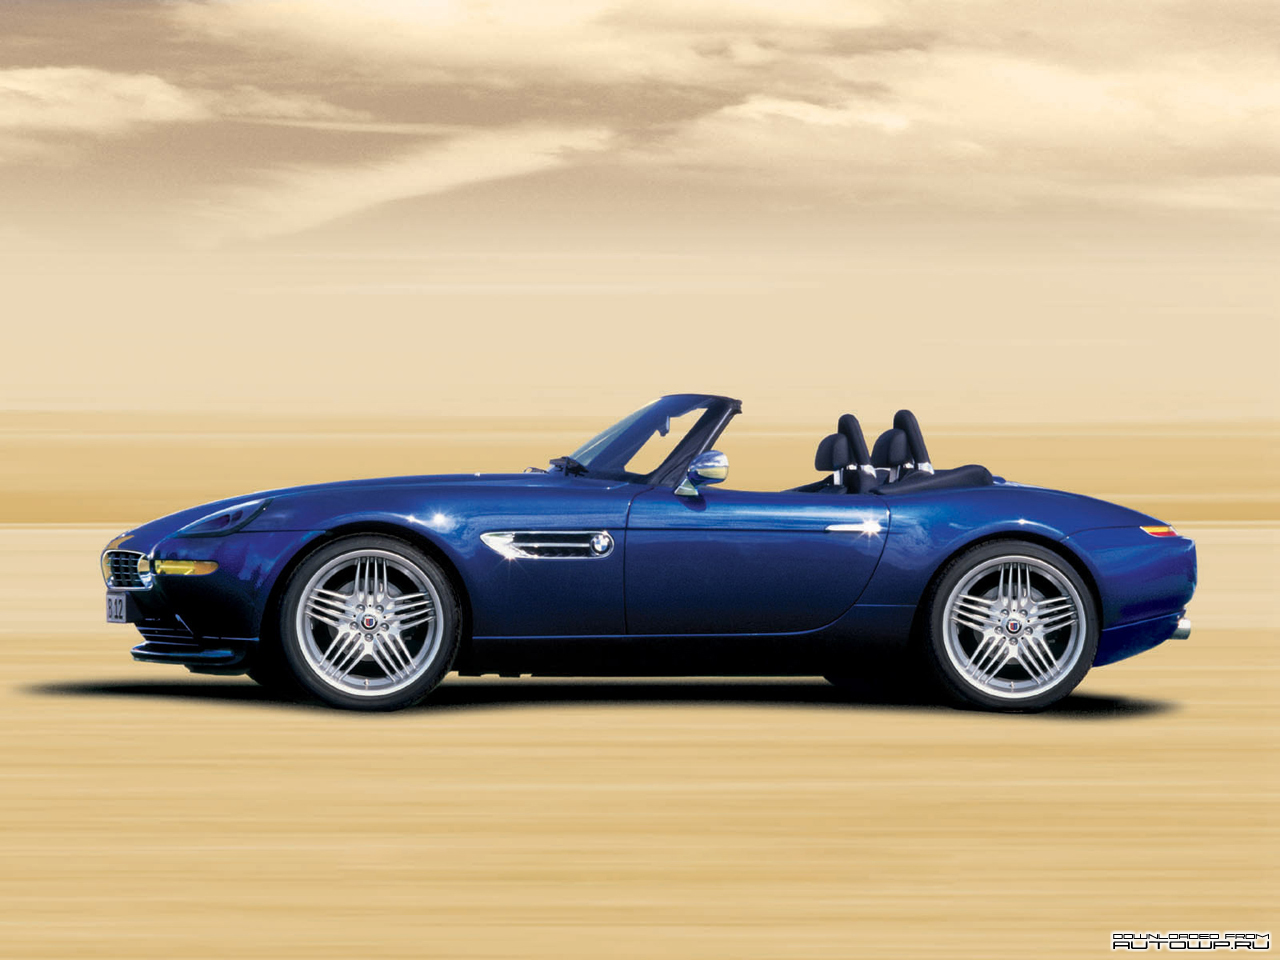 Alpina Roadster V8 E52 Photos Photogallery With 6 Pics